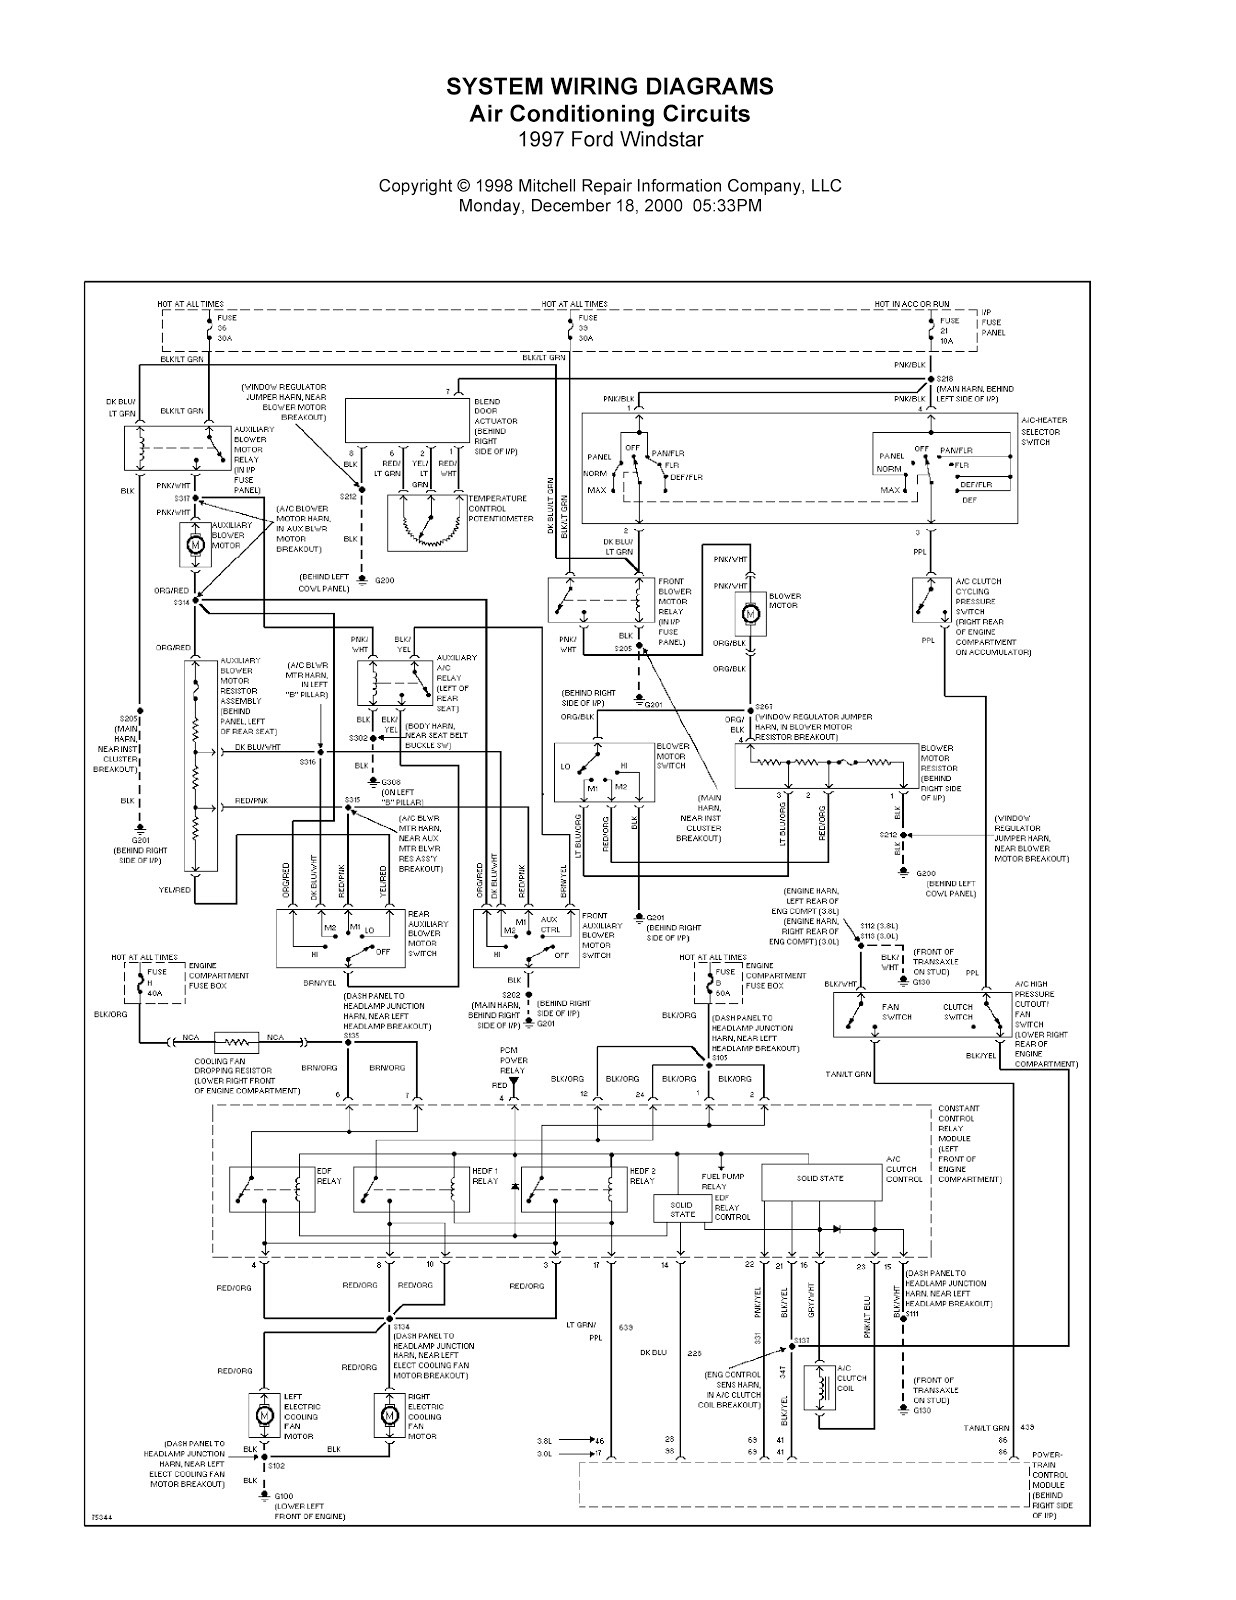 Ford Escort Engine Diagram Awesome 1997 ford Escort Wiring Diagram S